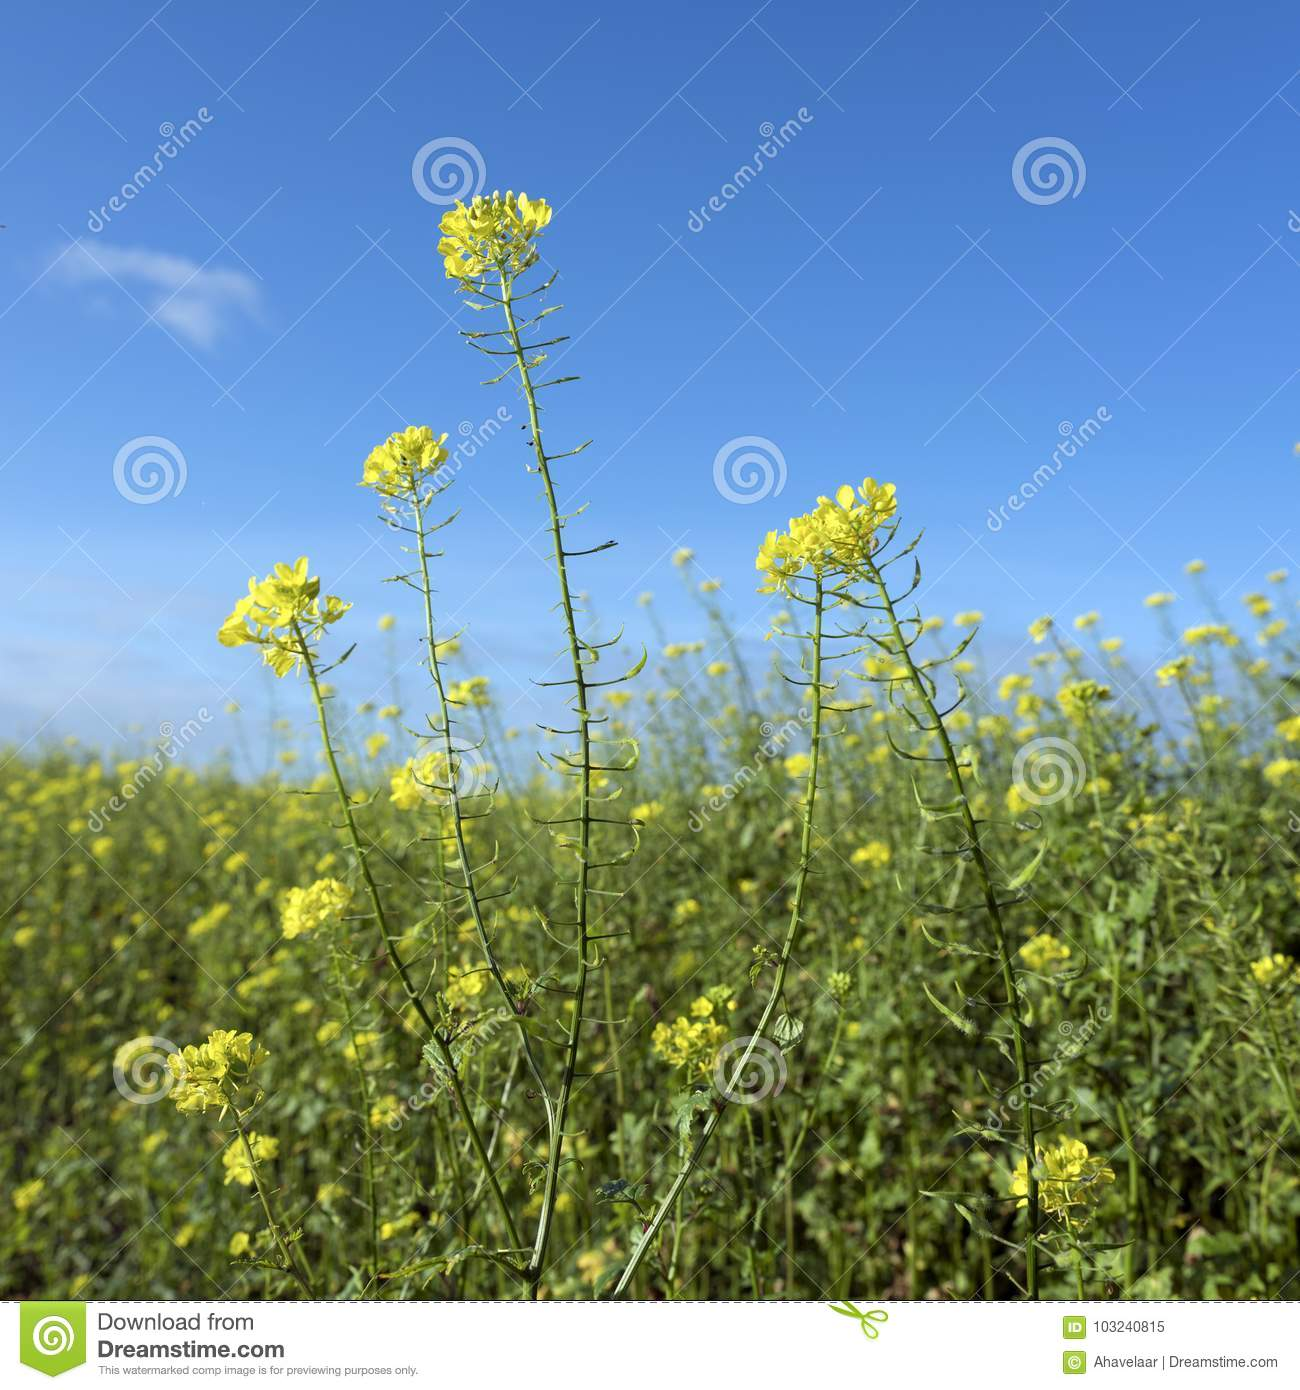 Yellow Flowers Of Mustard Seed In Field Stock Image Image Of